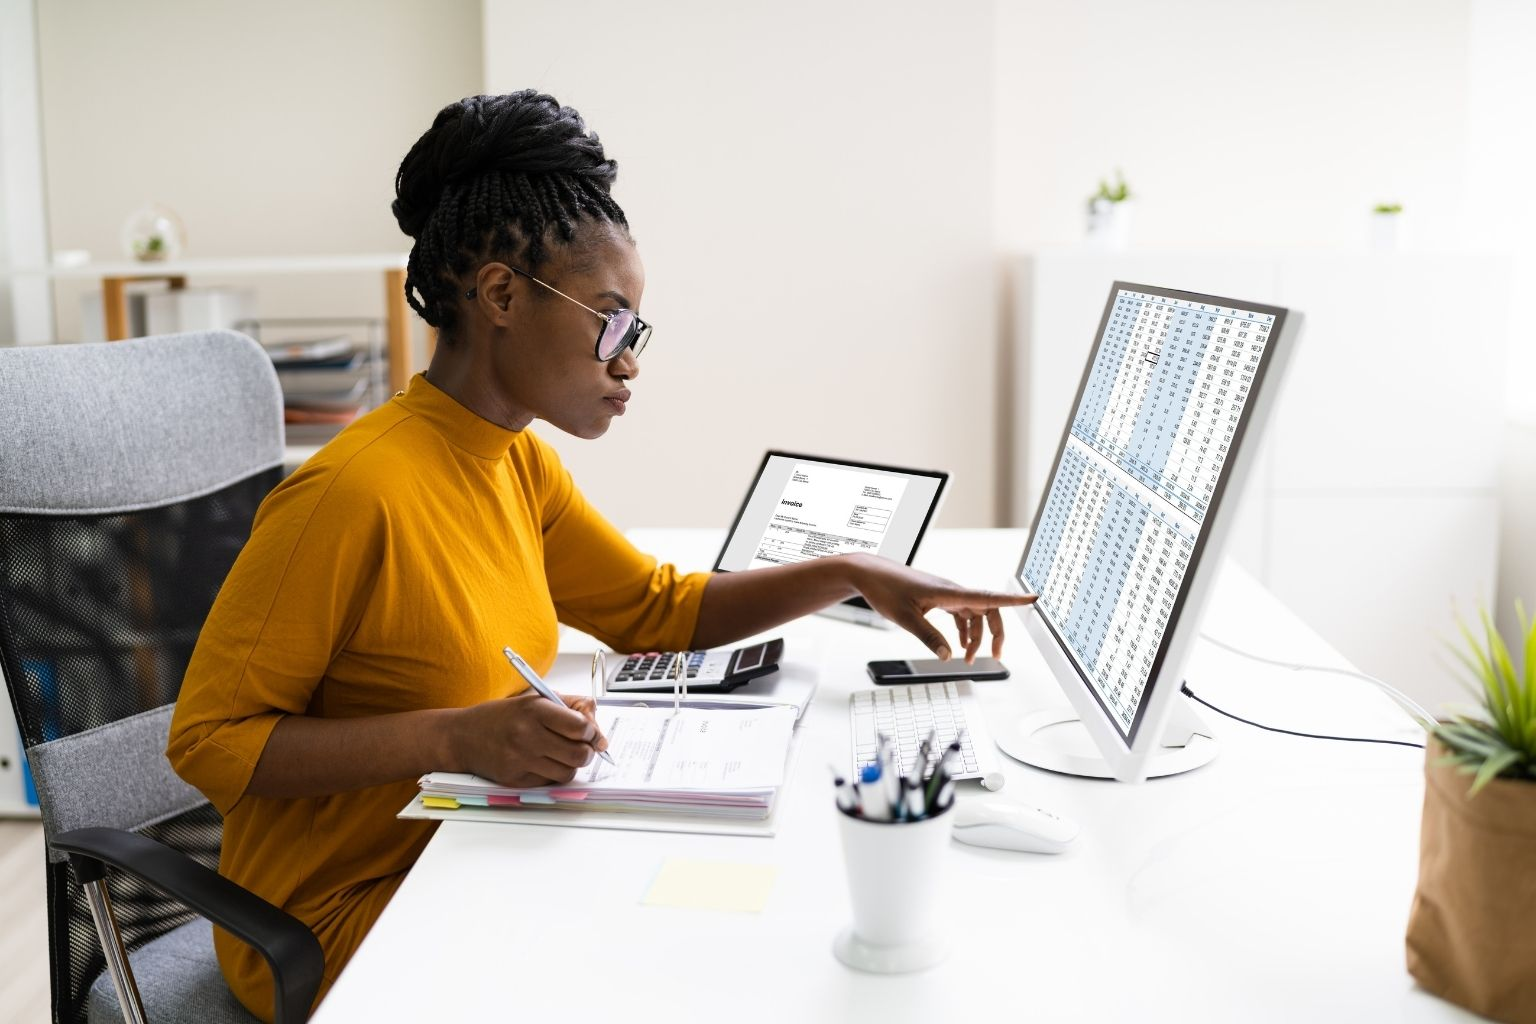 Healthcare professional at computer